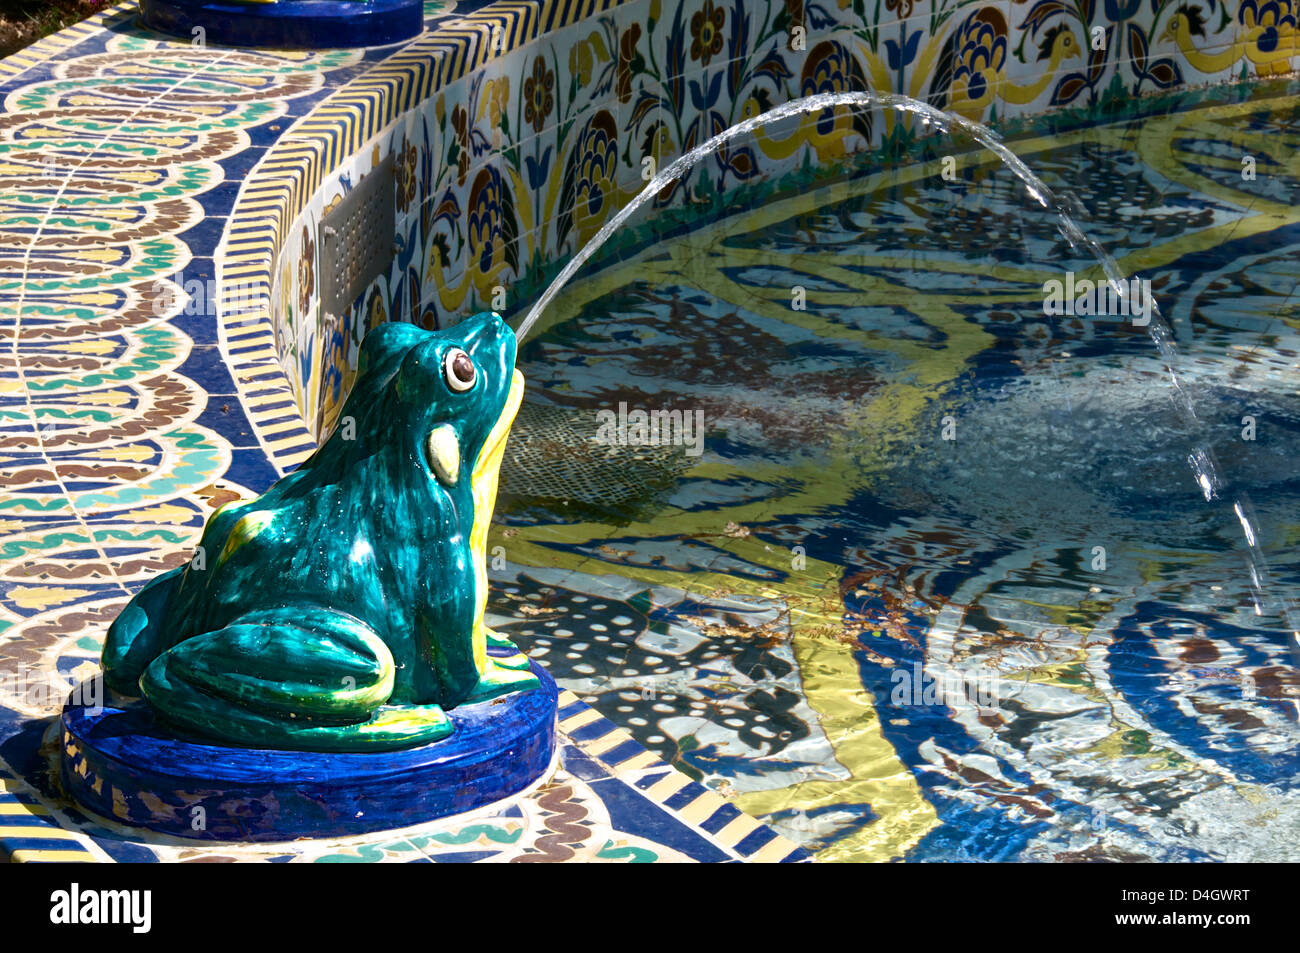 Ceramic frog spitting out water, Frogs Fountain, Maria Luisa Park, Seville, Andalusia, Spain - Stock Image